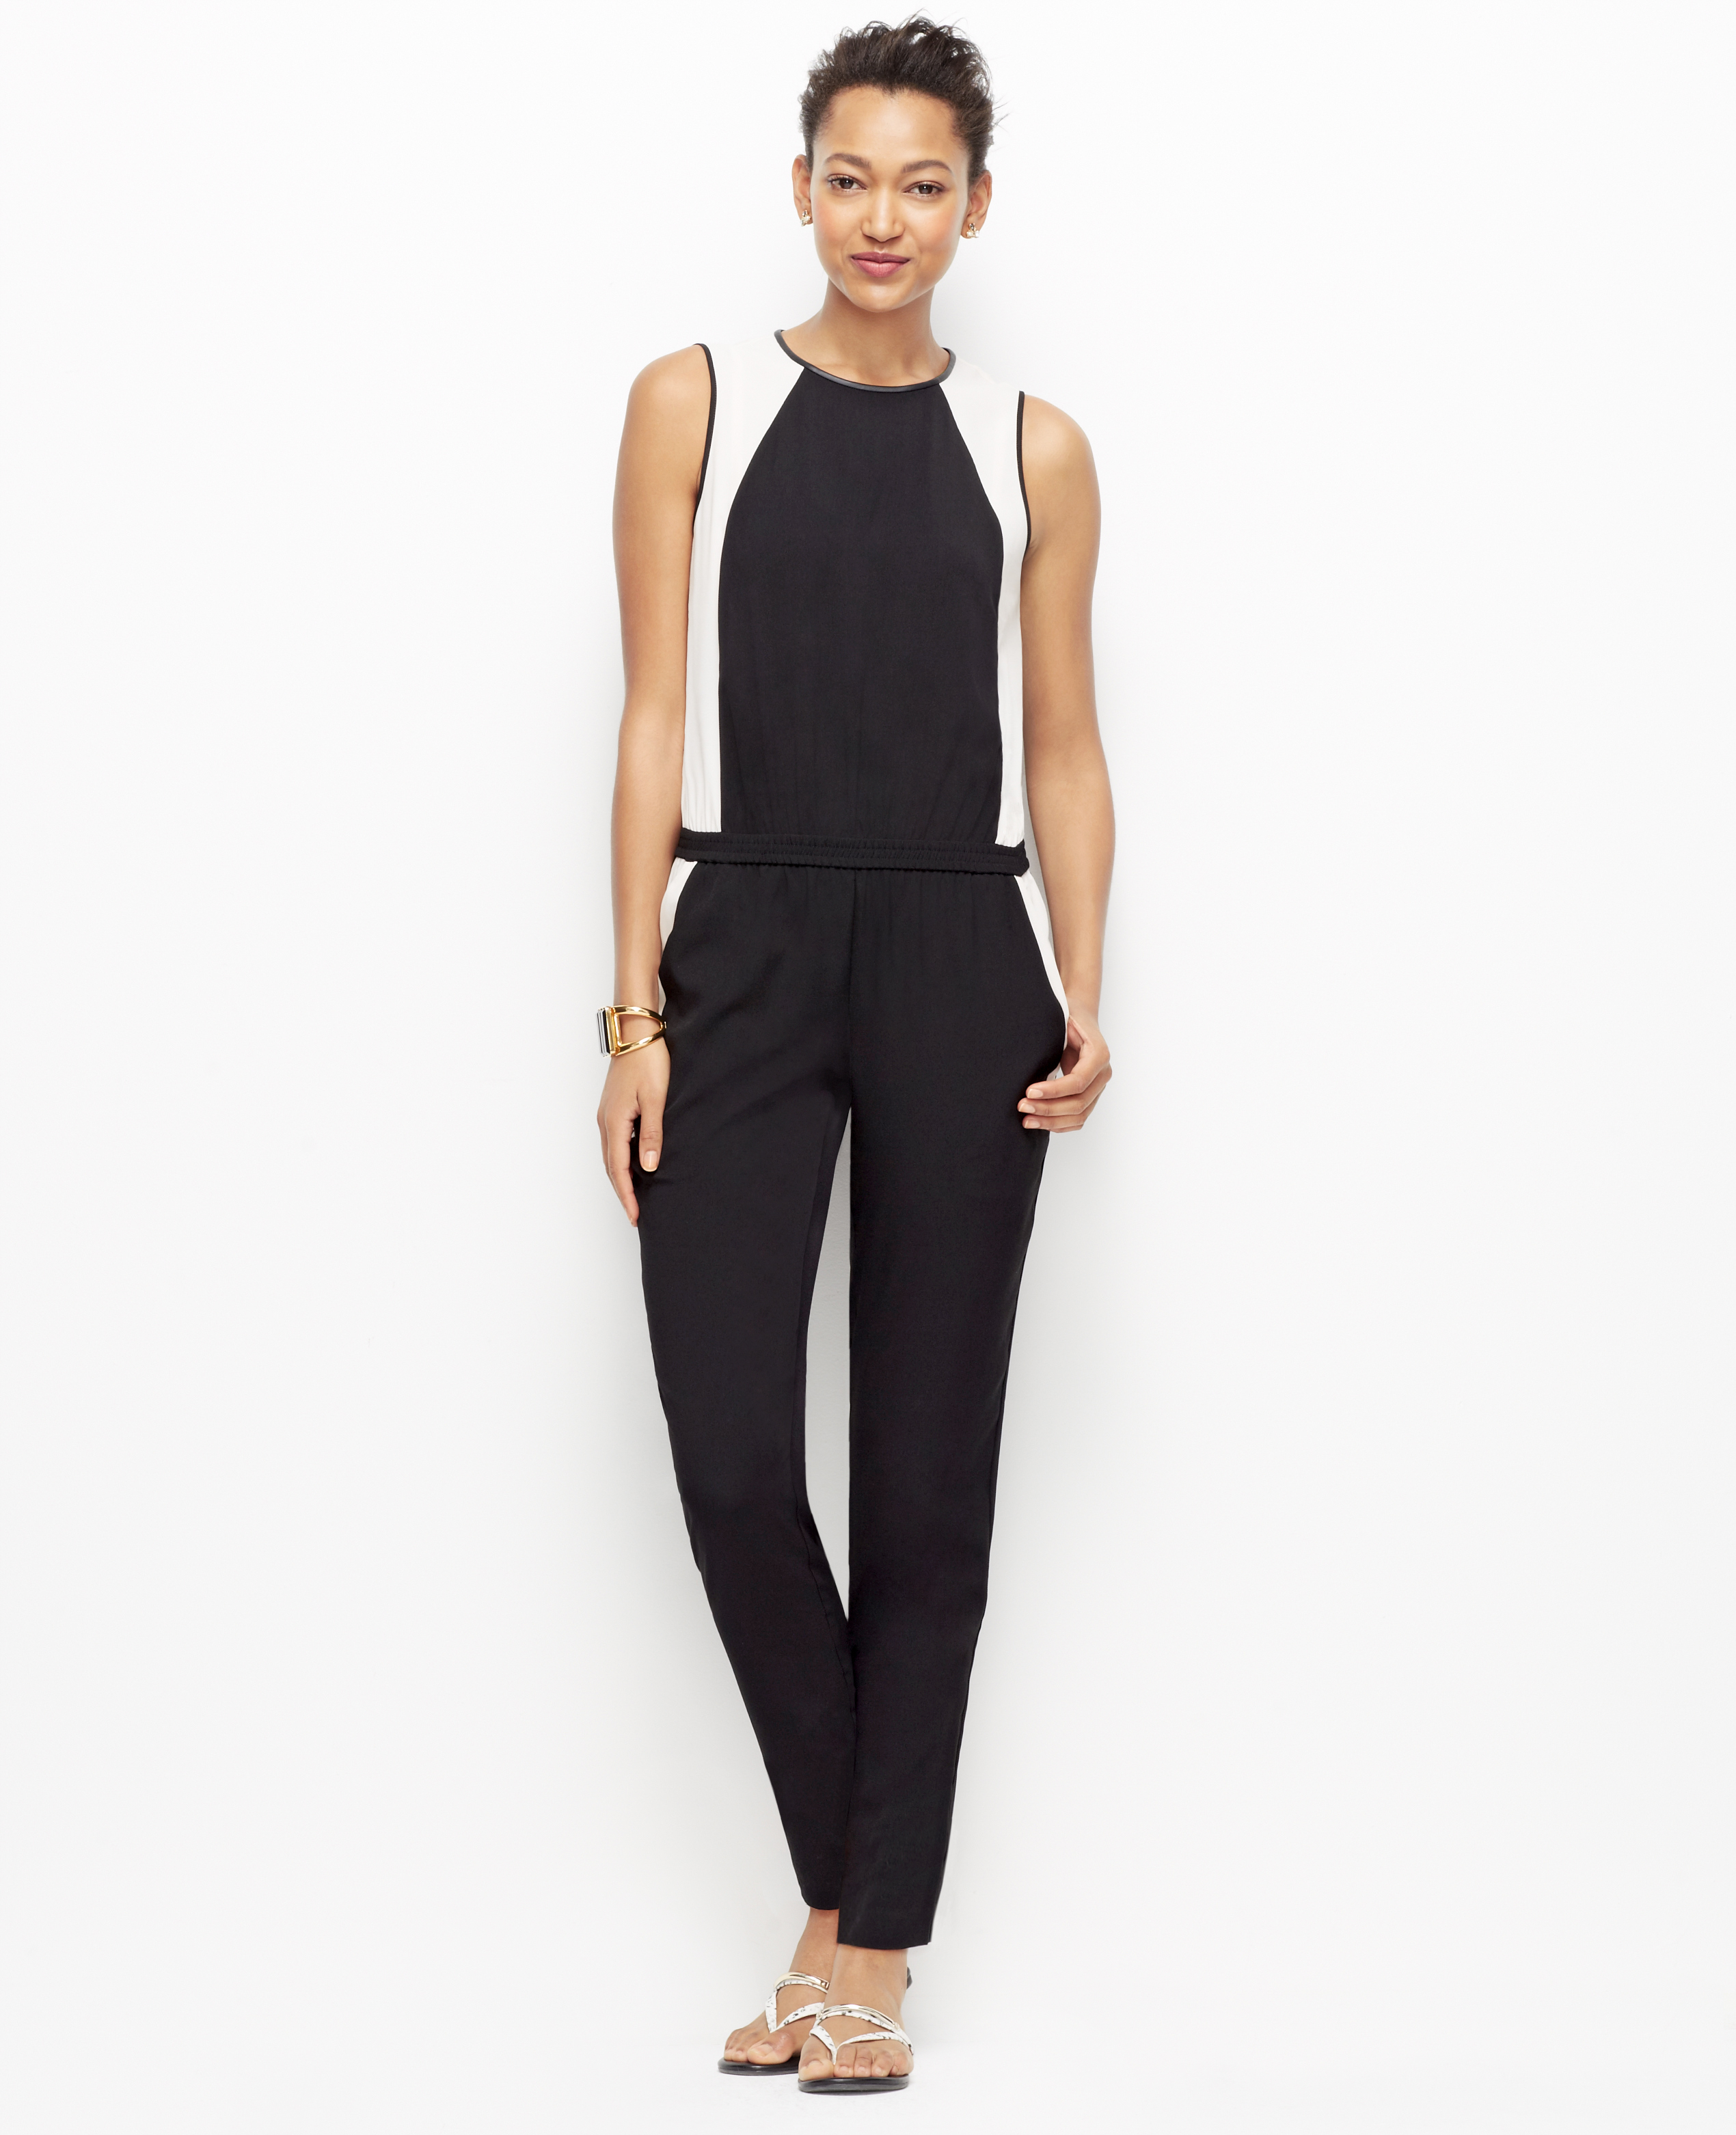 8af9b9ad70e8 Lyst - Ann Taylor Tall Colorblock Jumpsuit in Black